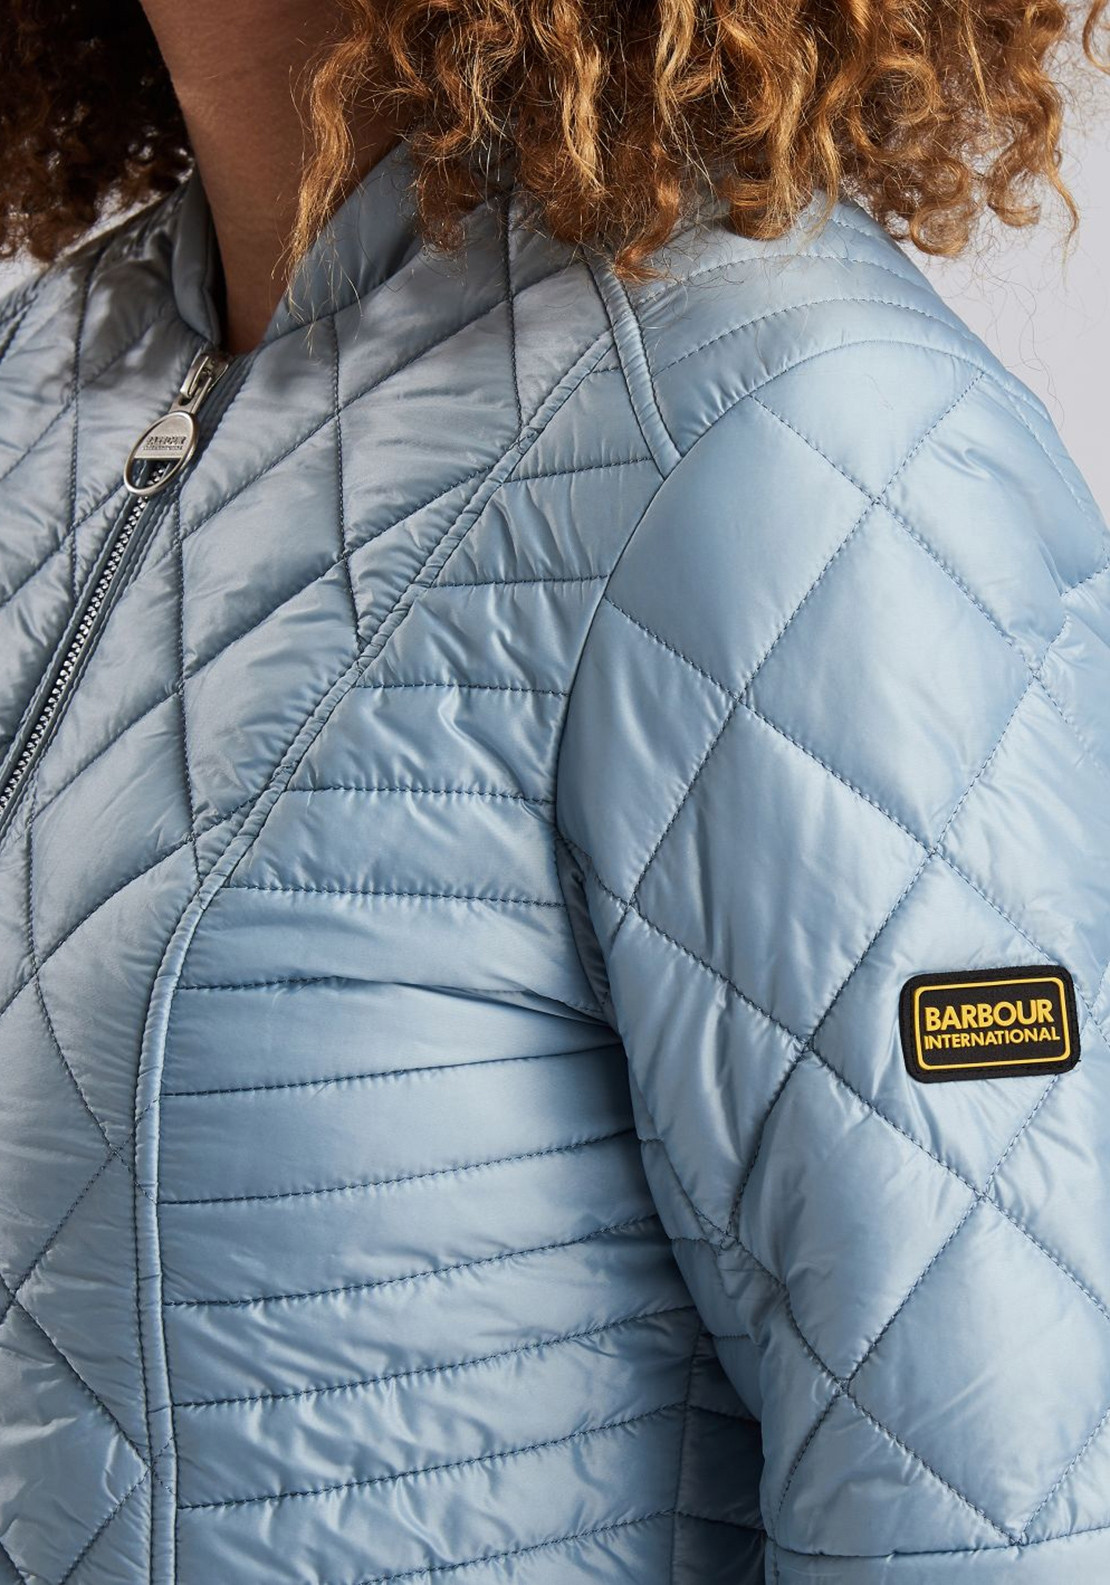 cdfc3bc65 Barbour International Sprinter Quilted Jacket, Ice Blue